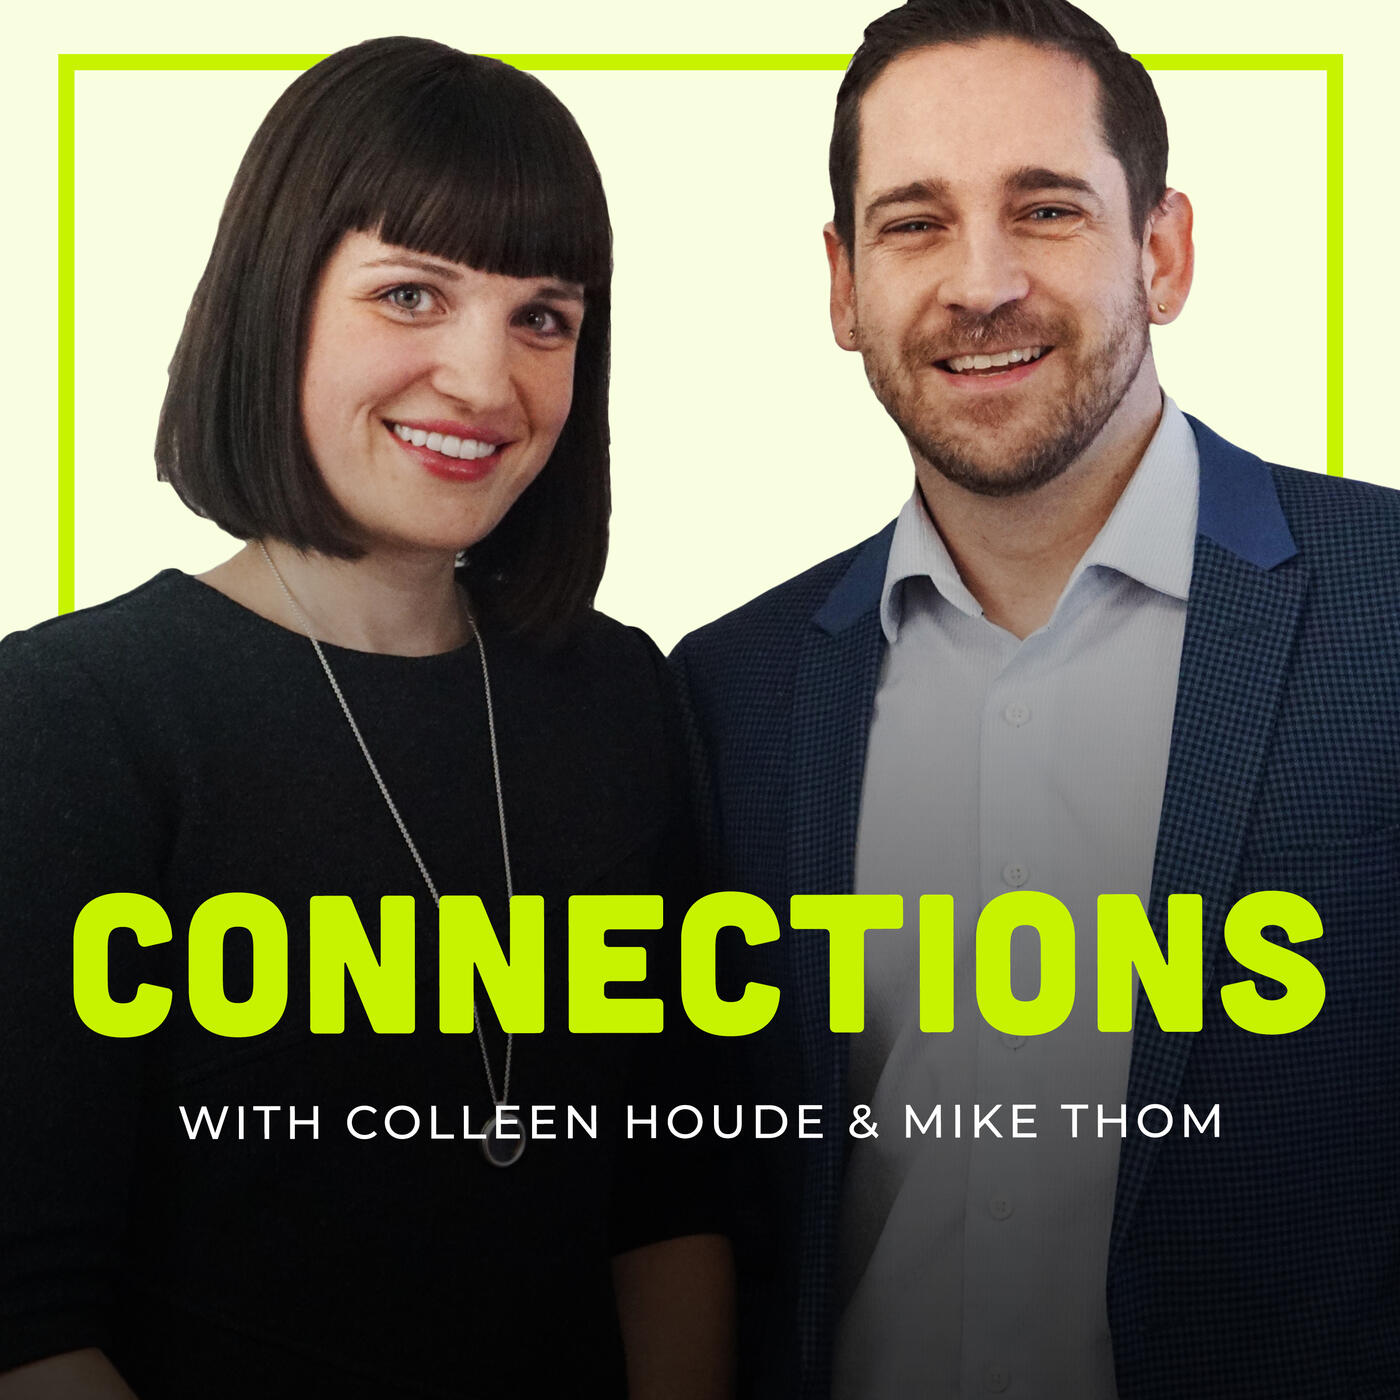 Connections with Mike Thom and Colleen Houde